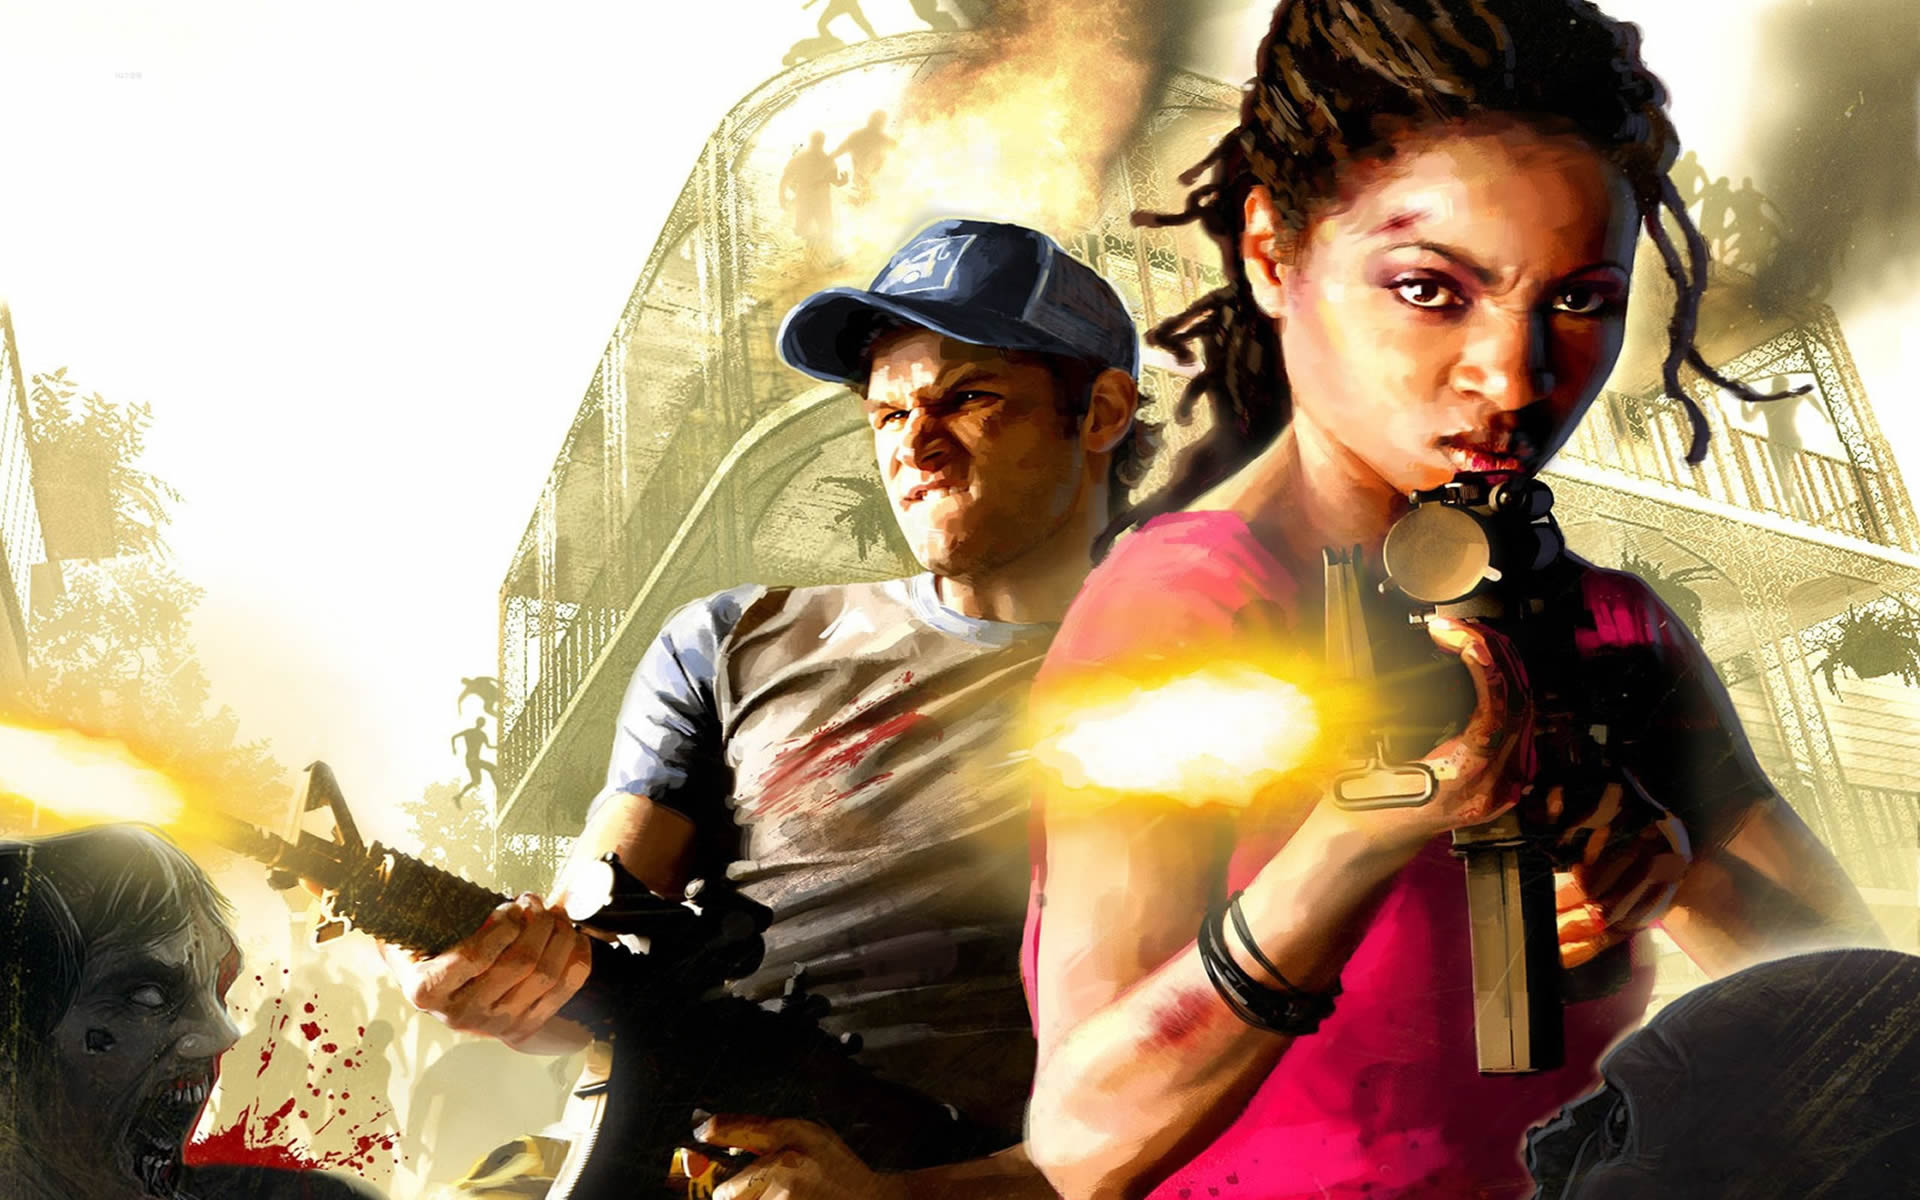 Nick And Rochelle With Machine Guns Left 4 Dead 2 Wallpaper